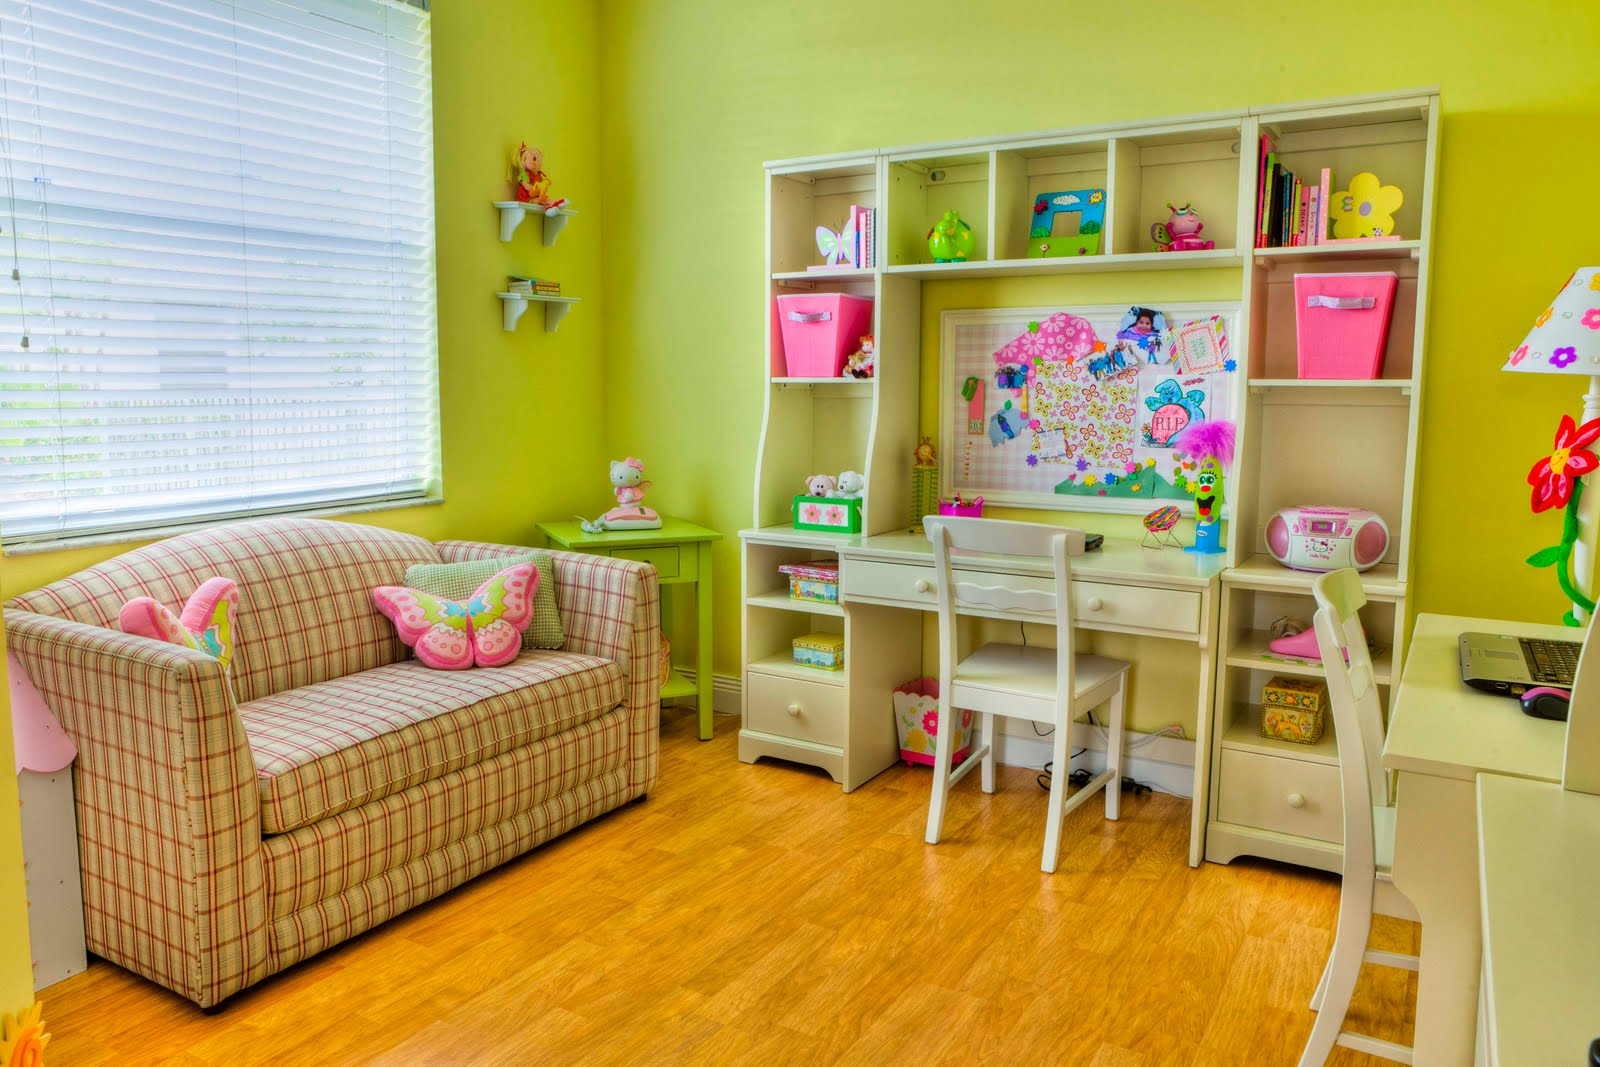 Intramuros design children 39 s room design Best color for kids room